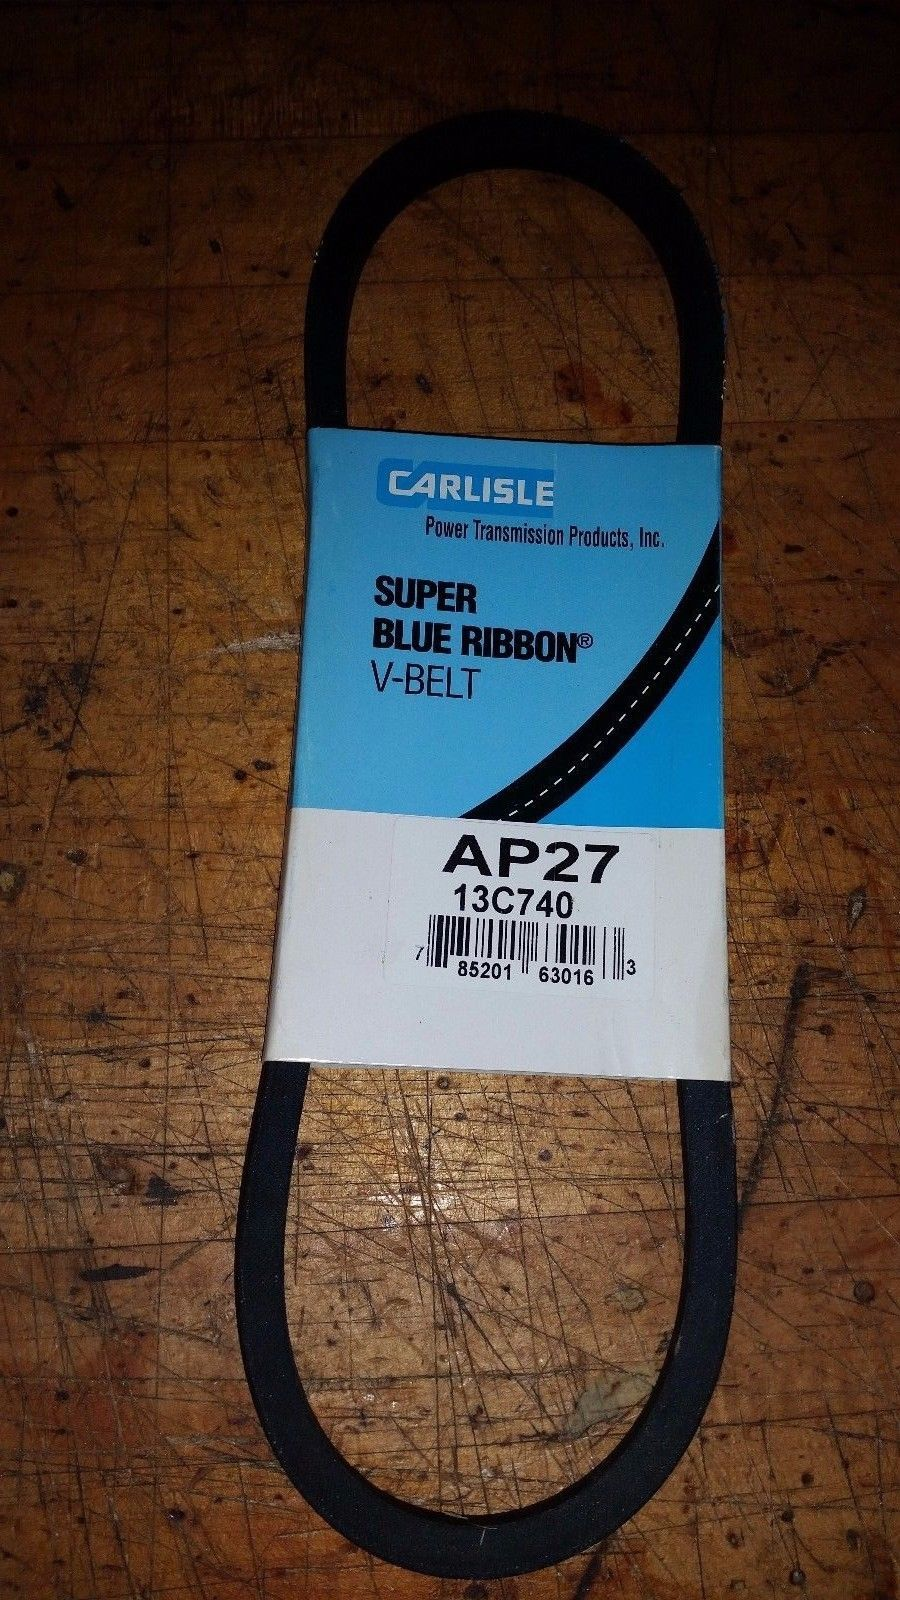 V-BELT VEE BELT AP27 13C740 CARLISLE SUPER BLUE RIBBON